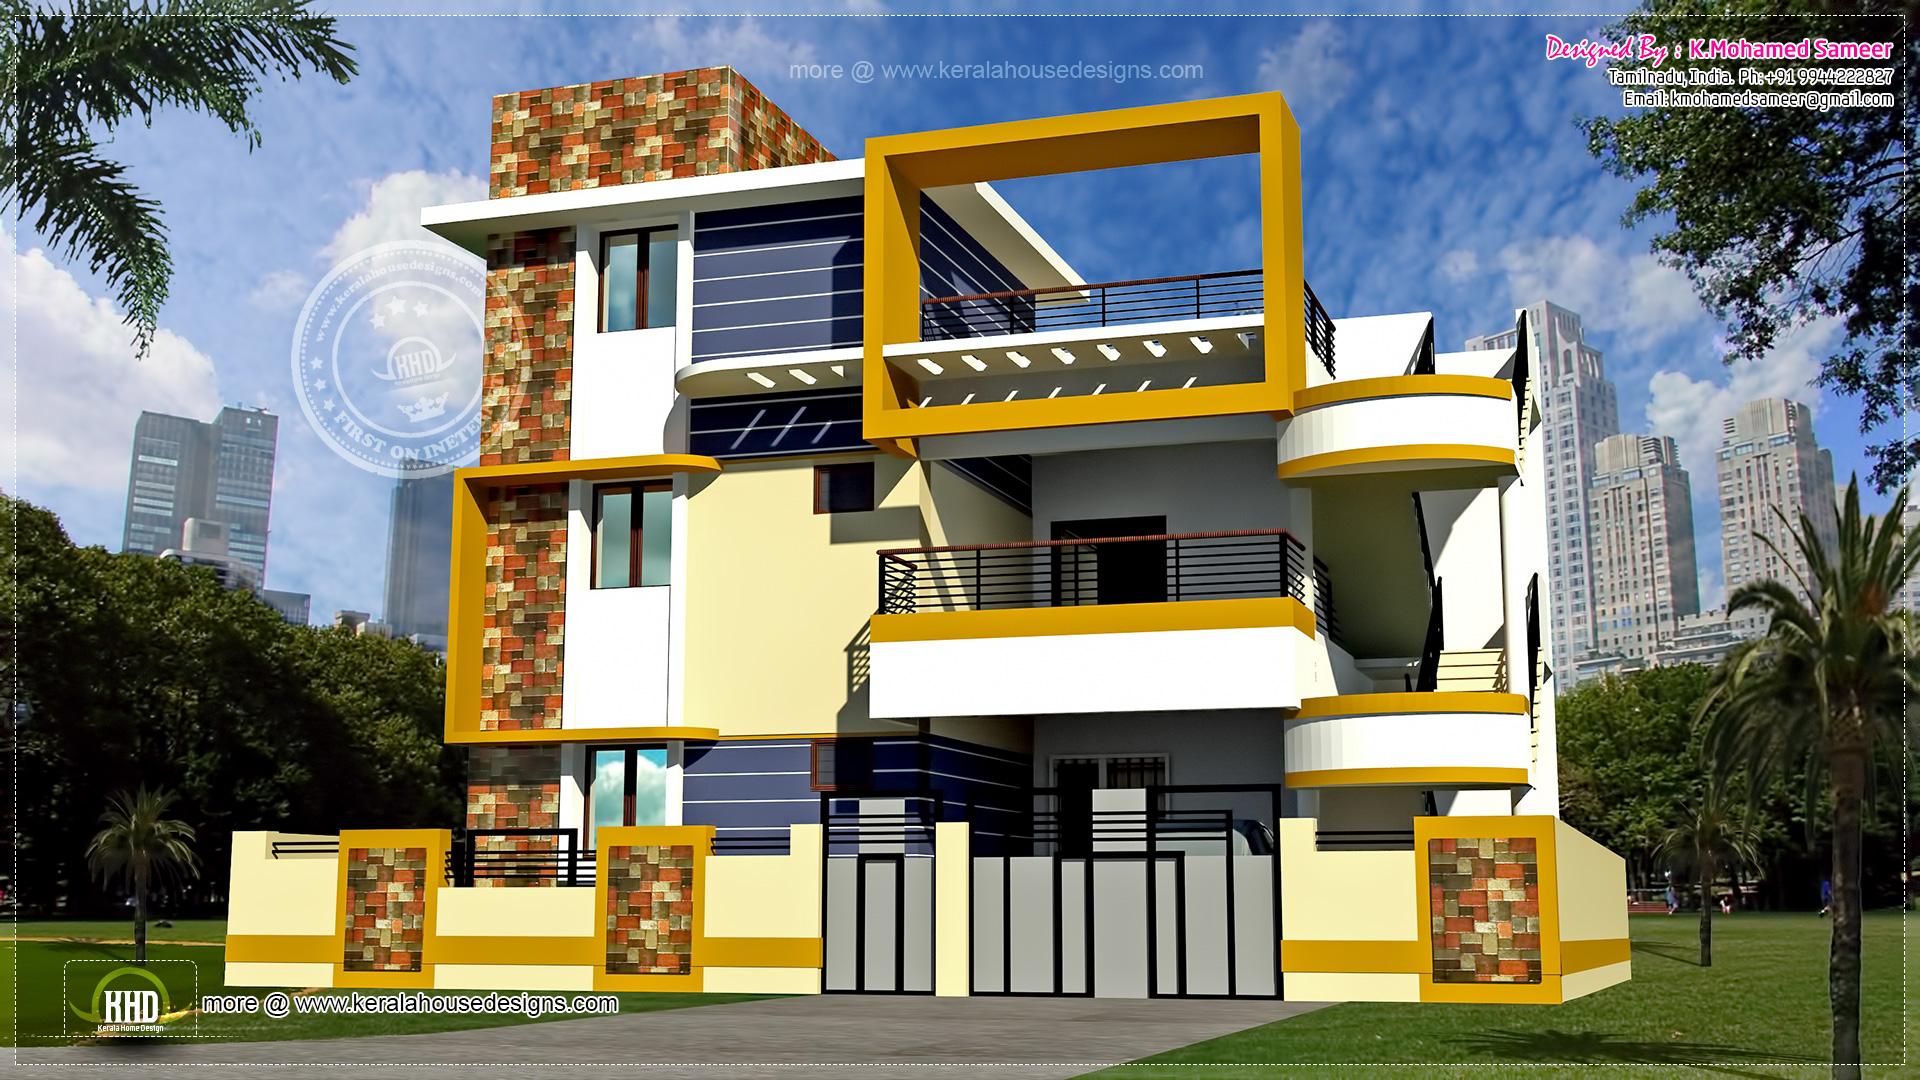 Modern 3 floor tamilnadu house design kerala home design for Modern kitchen design tamilnadu